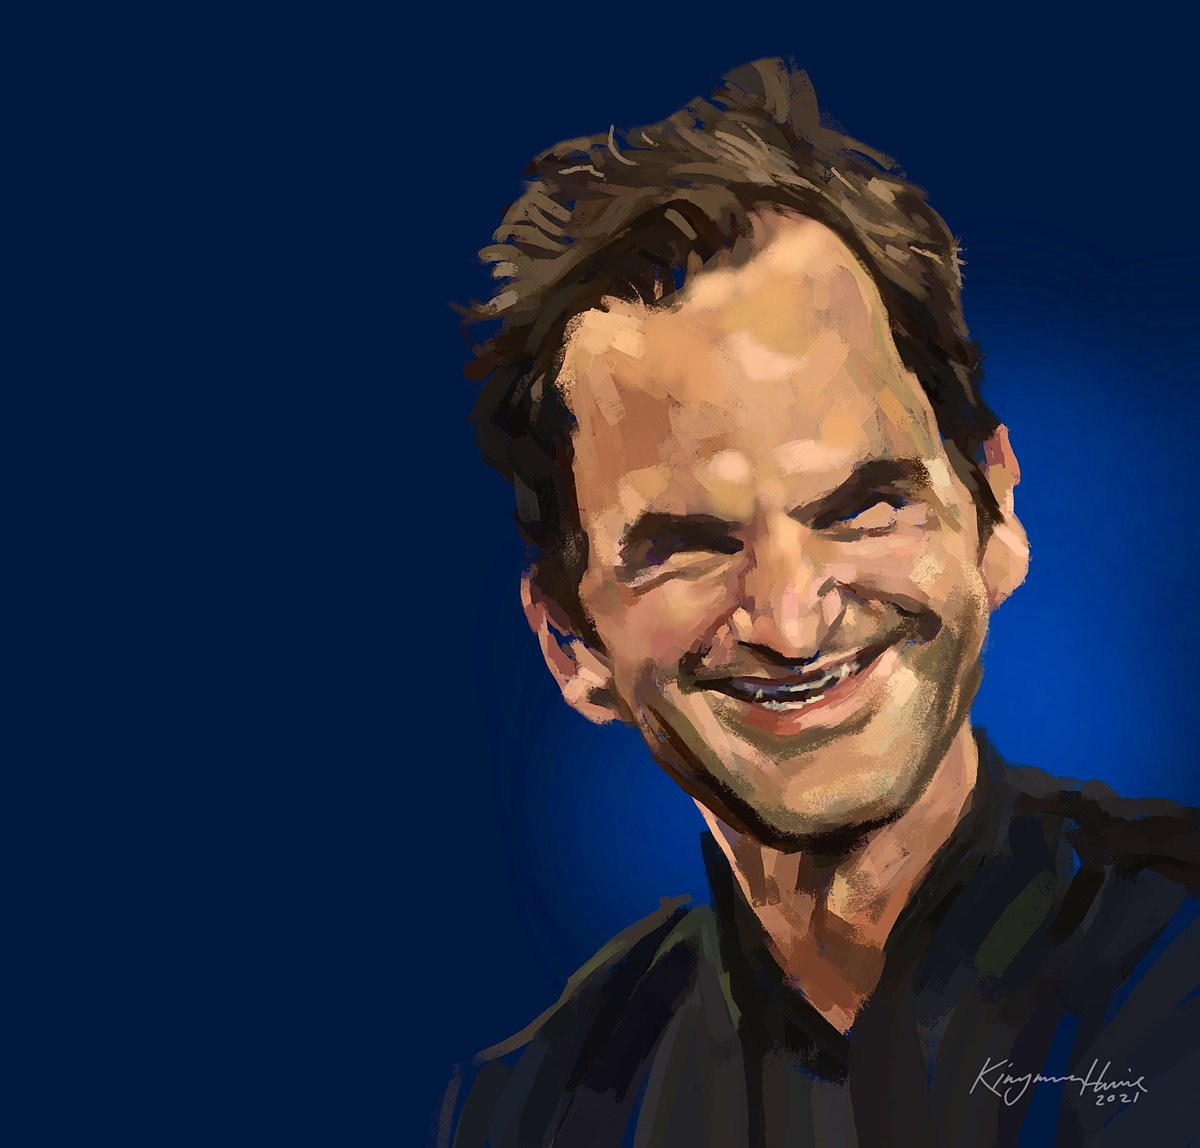 A new one I'm currently working on of Roger Federer. After being completely disrupted by 2020, it looks like my creative spark has suddenly reappeared. Happy AO2021 to team Procreate down in Tasmania! #caricature #rogerfederer @rogerfederer @AustralianOpen @usopen @Procreate